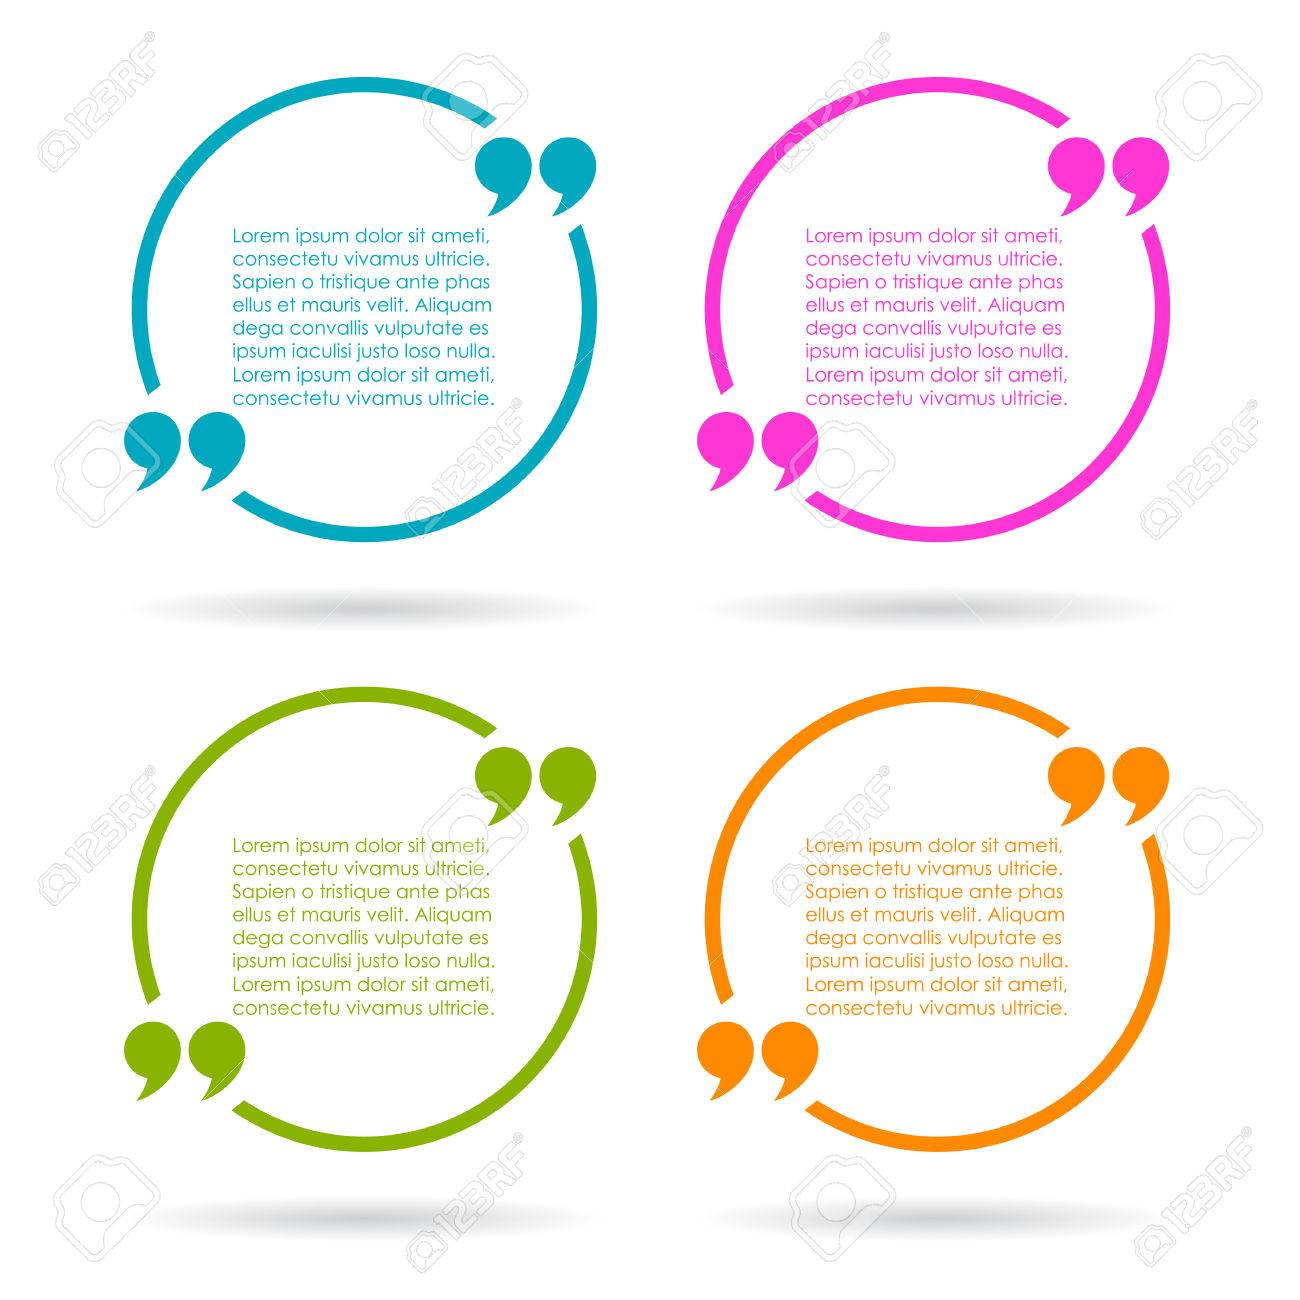 Round Quote Text Frames Royalty Free Cliparts, Vectors, And Stock ...